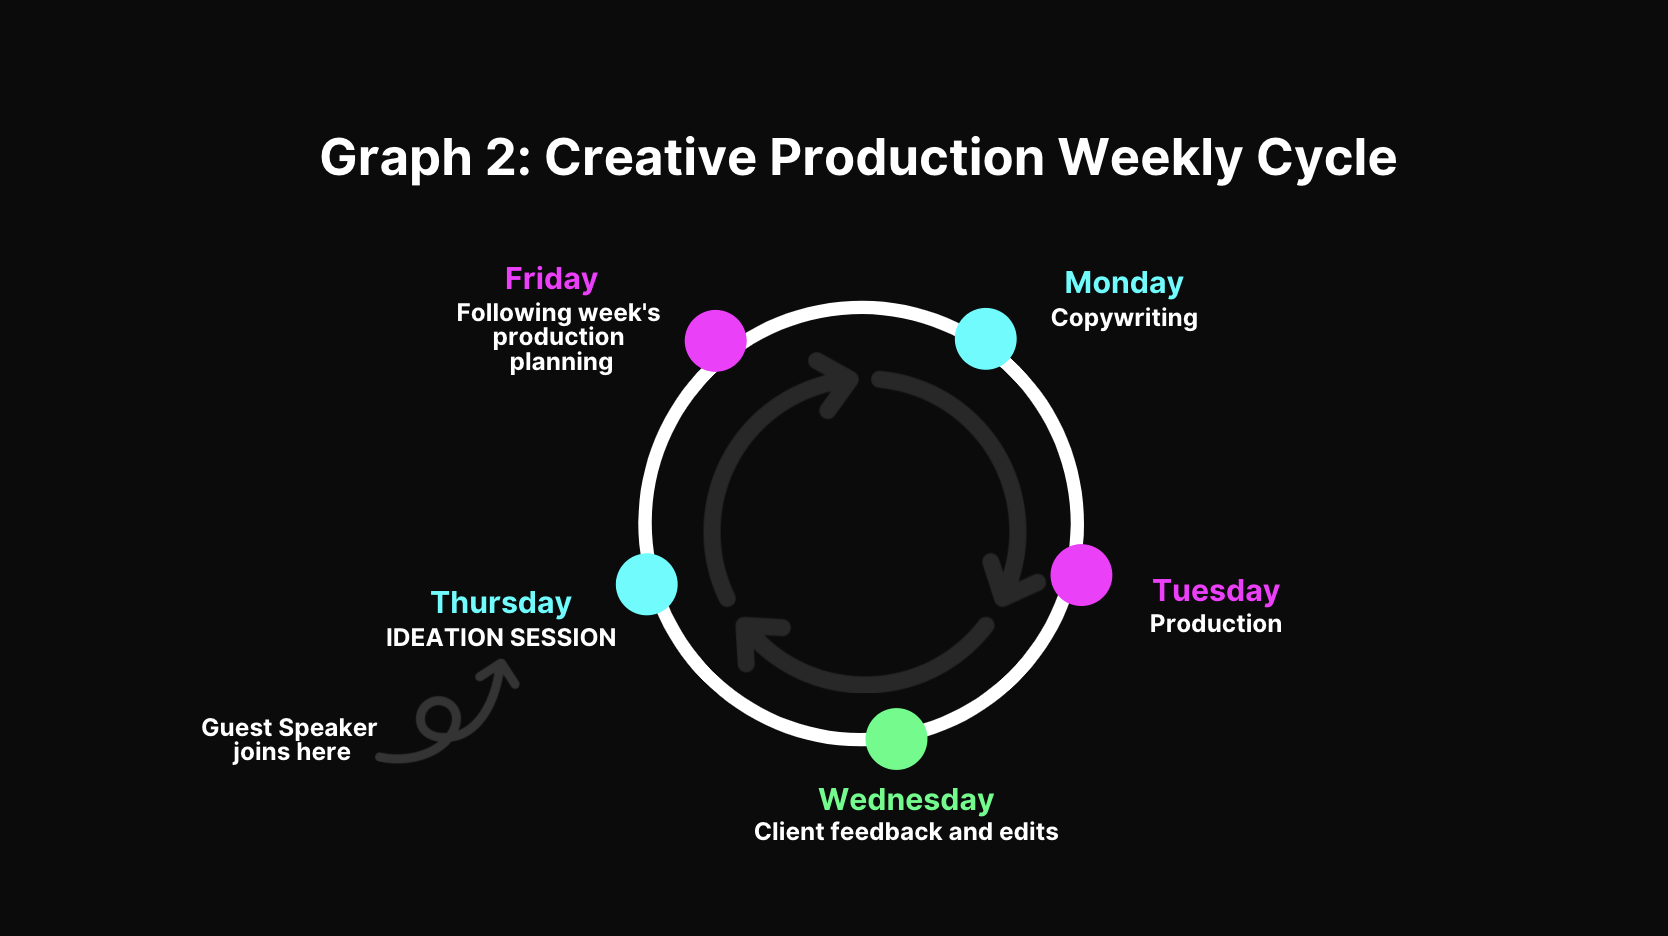 Creative Production Weekly Cycle